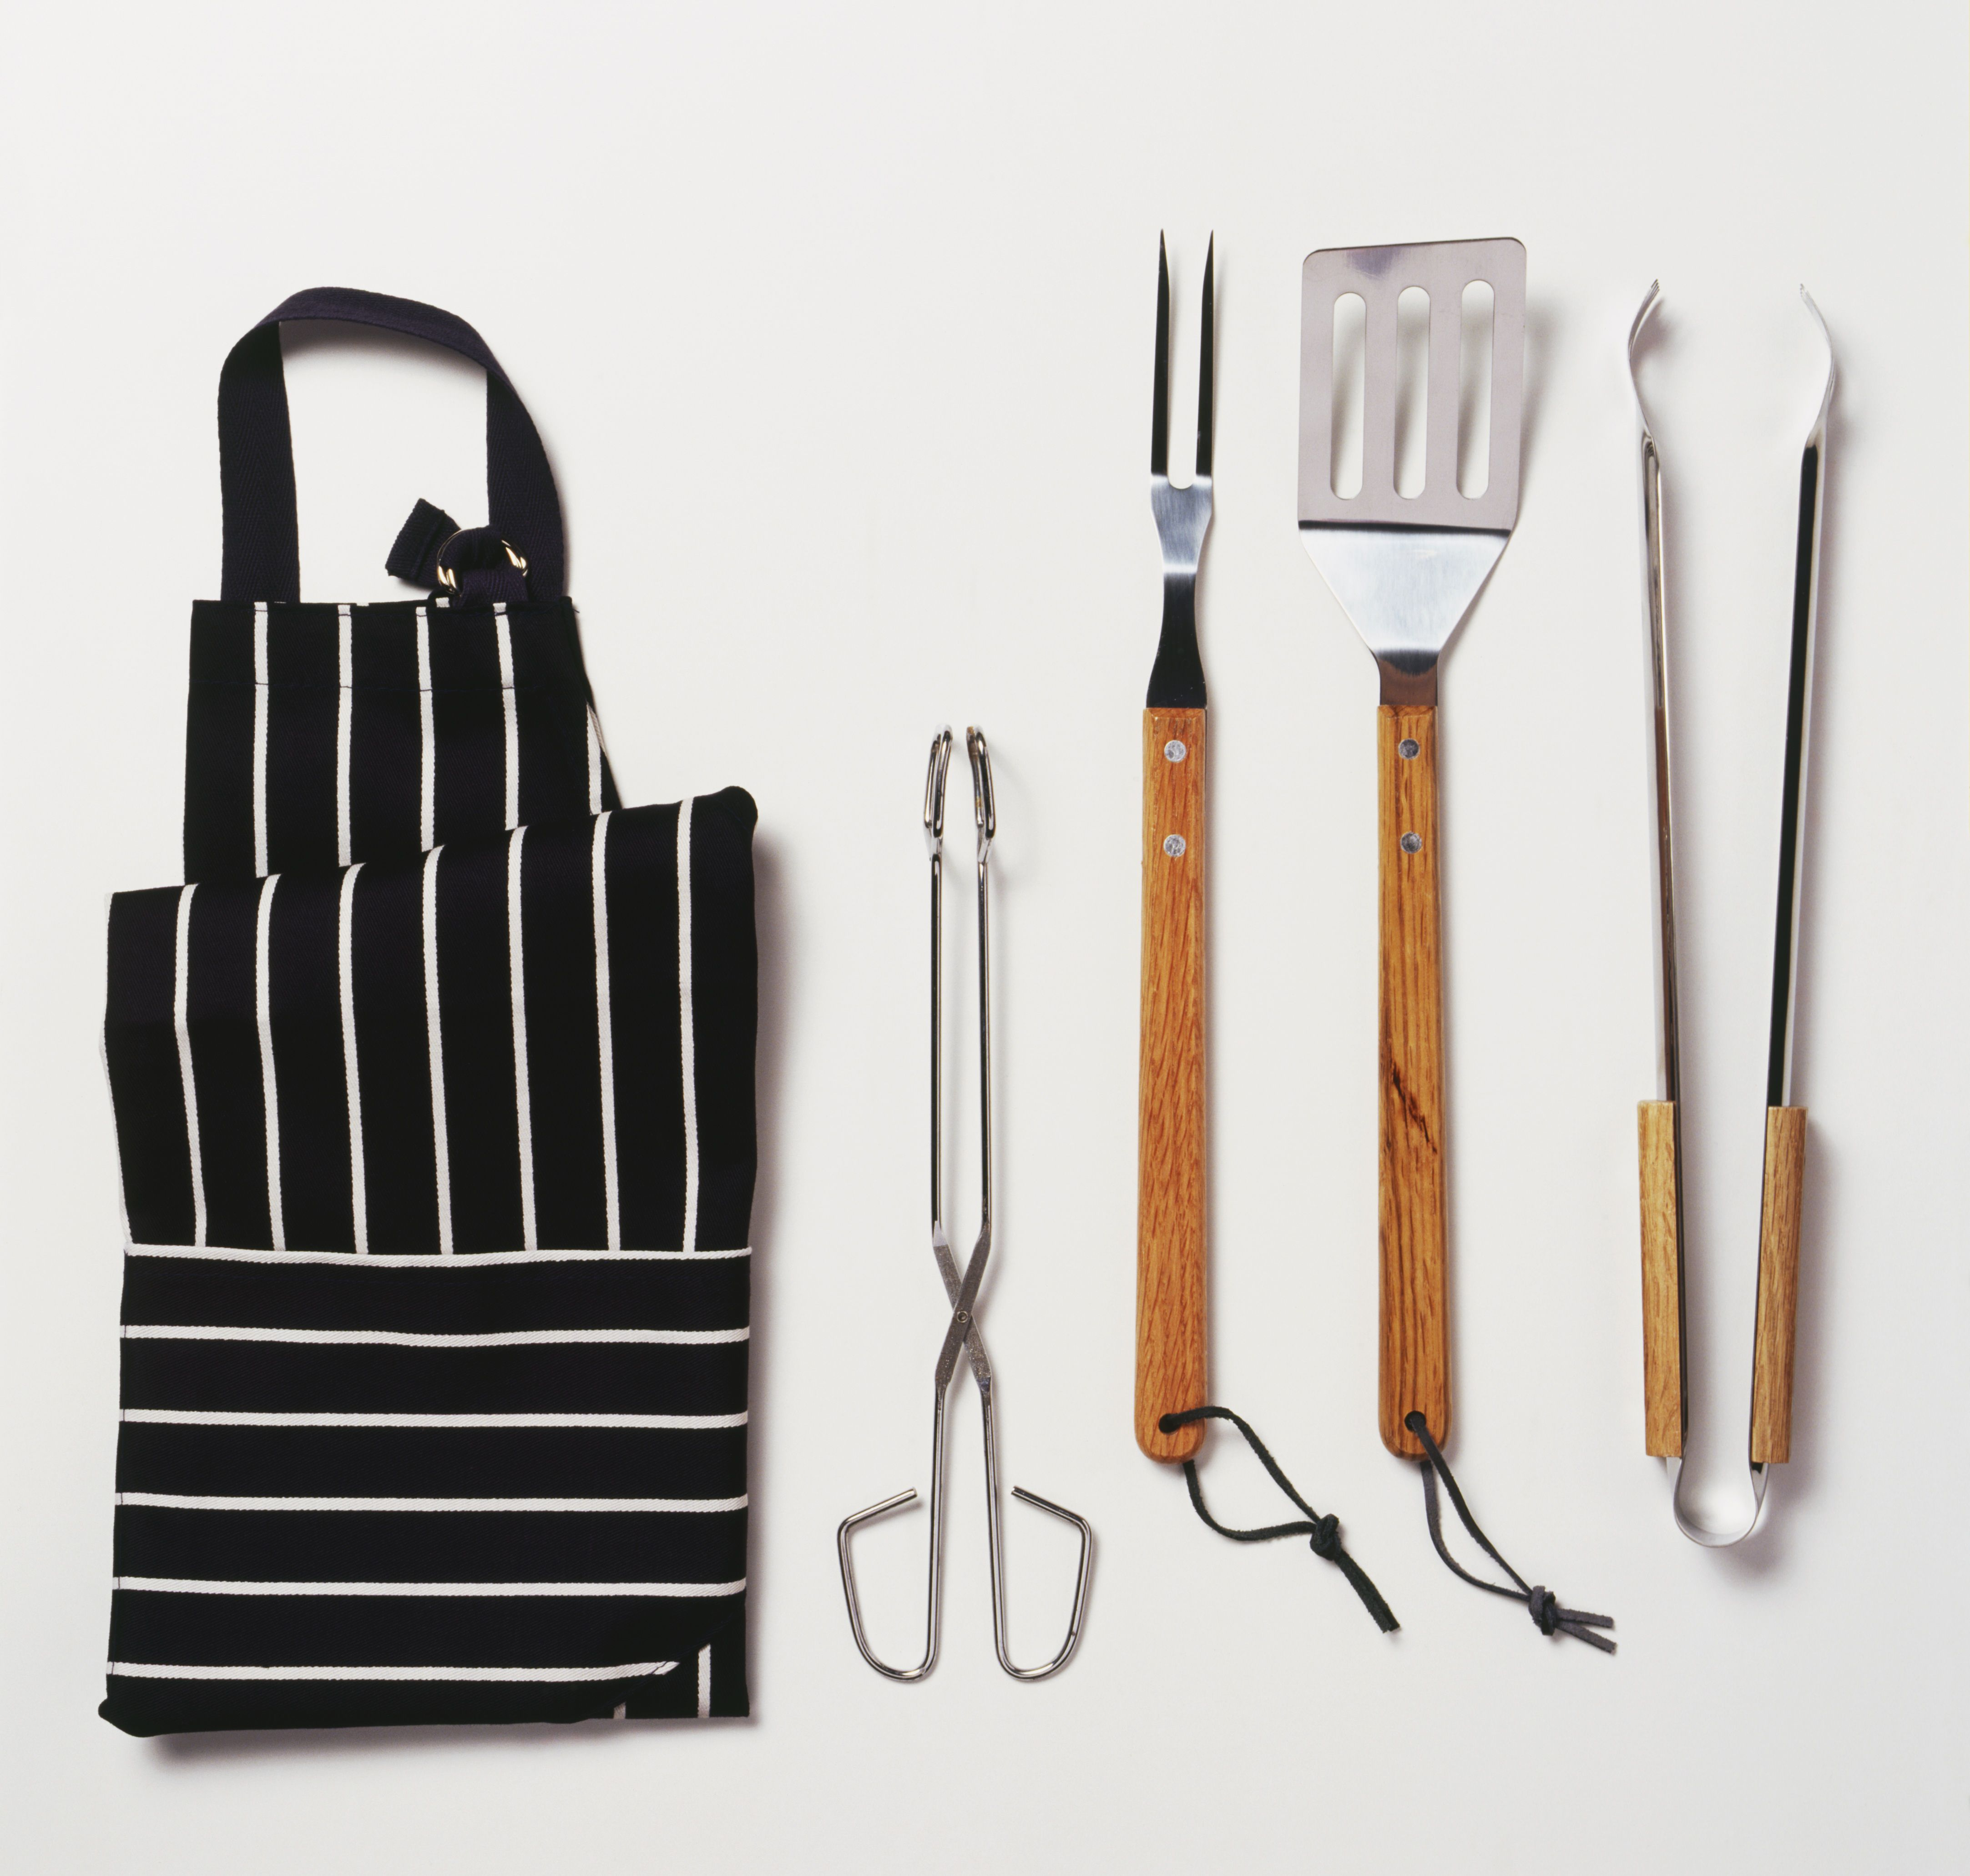 Tools needed for a barbecue.